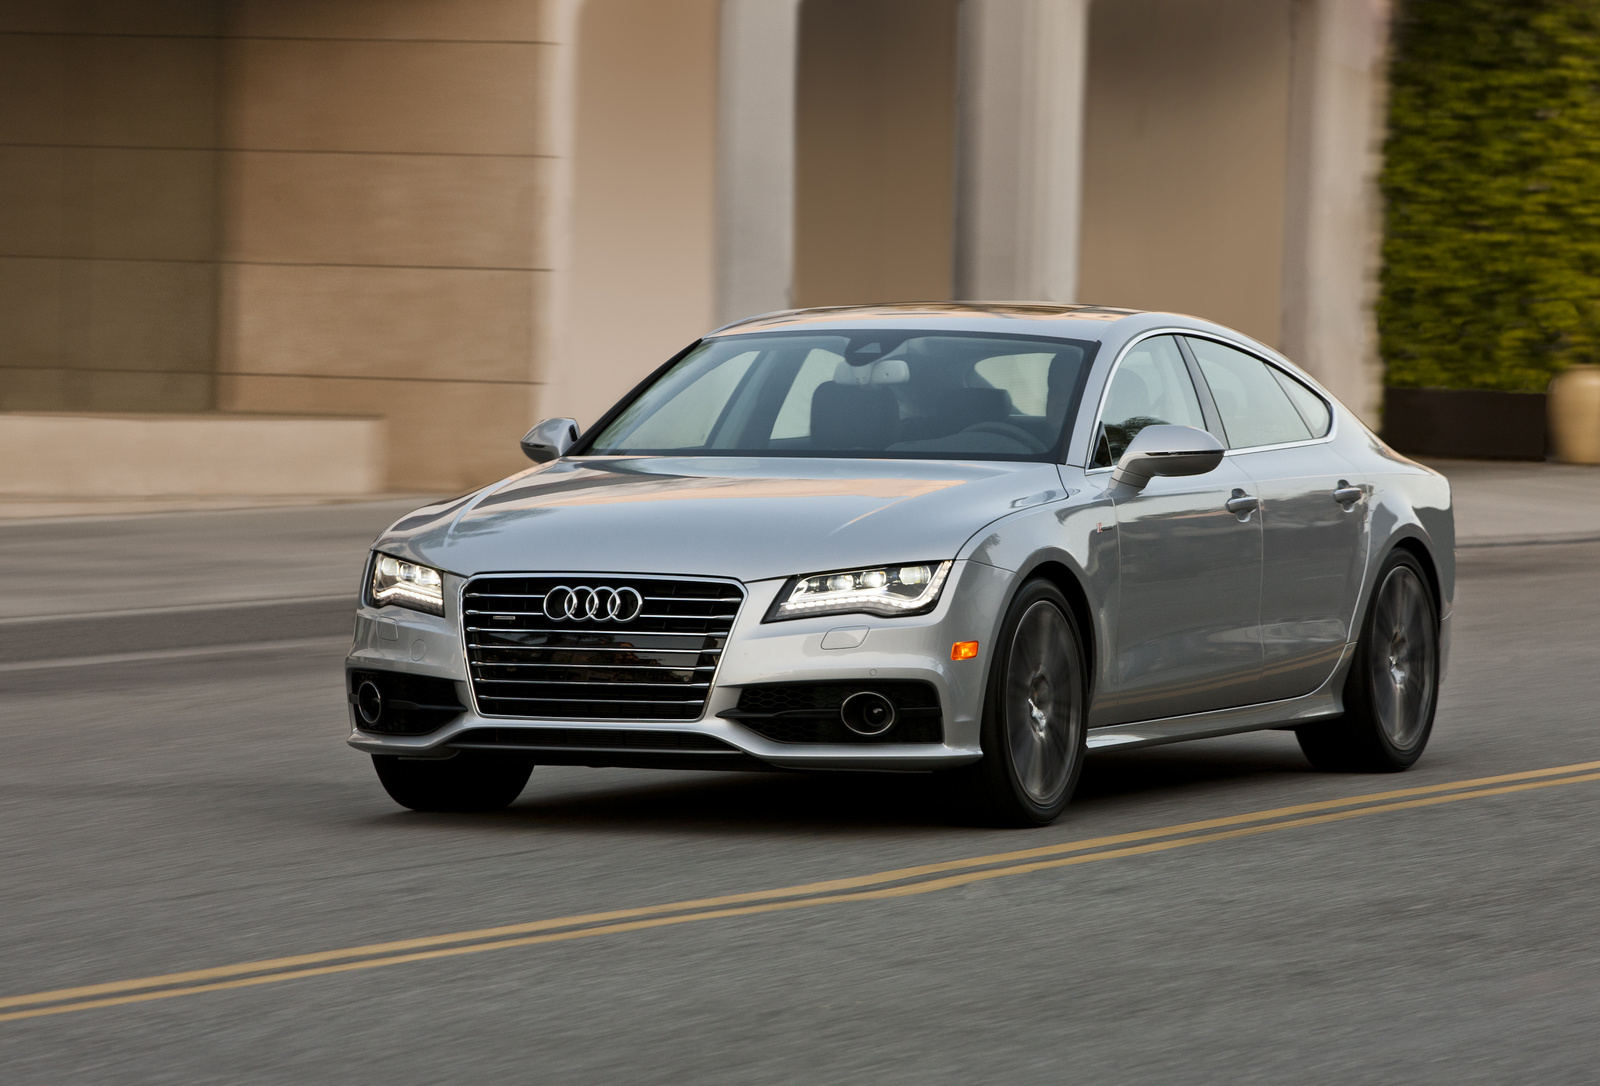 most wanted cars audi a7 2013. Black Bedroom Furniture Sets. Home Design Ideas